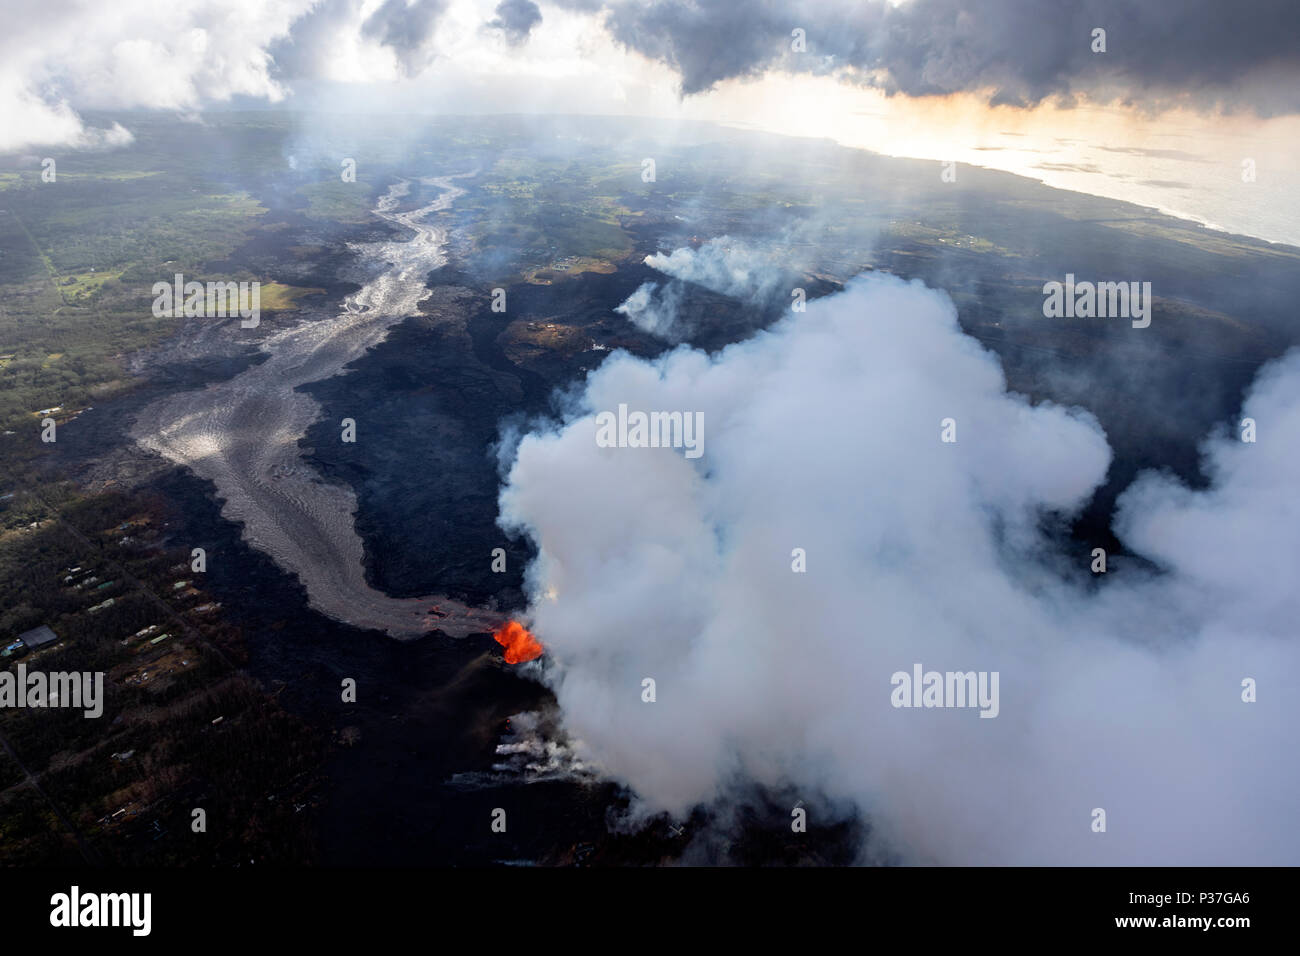 Aerial view of the eruption of the volcano Kilauea on Hawaii, in the picture Fissure 8, May 2018 - Stock Image